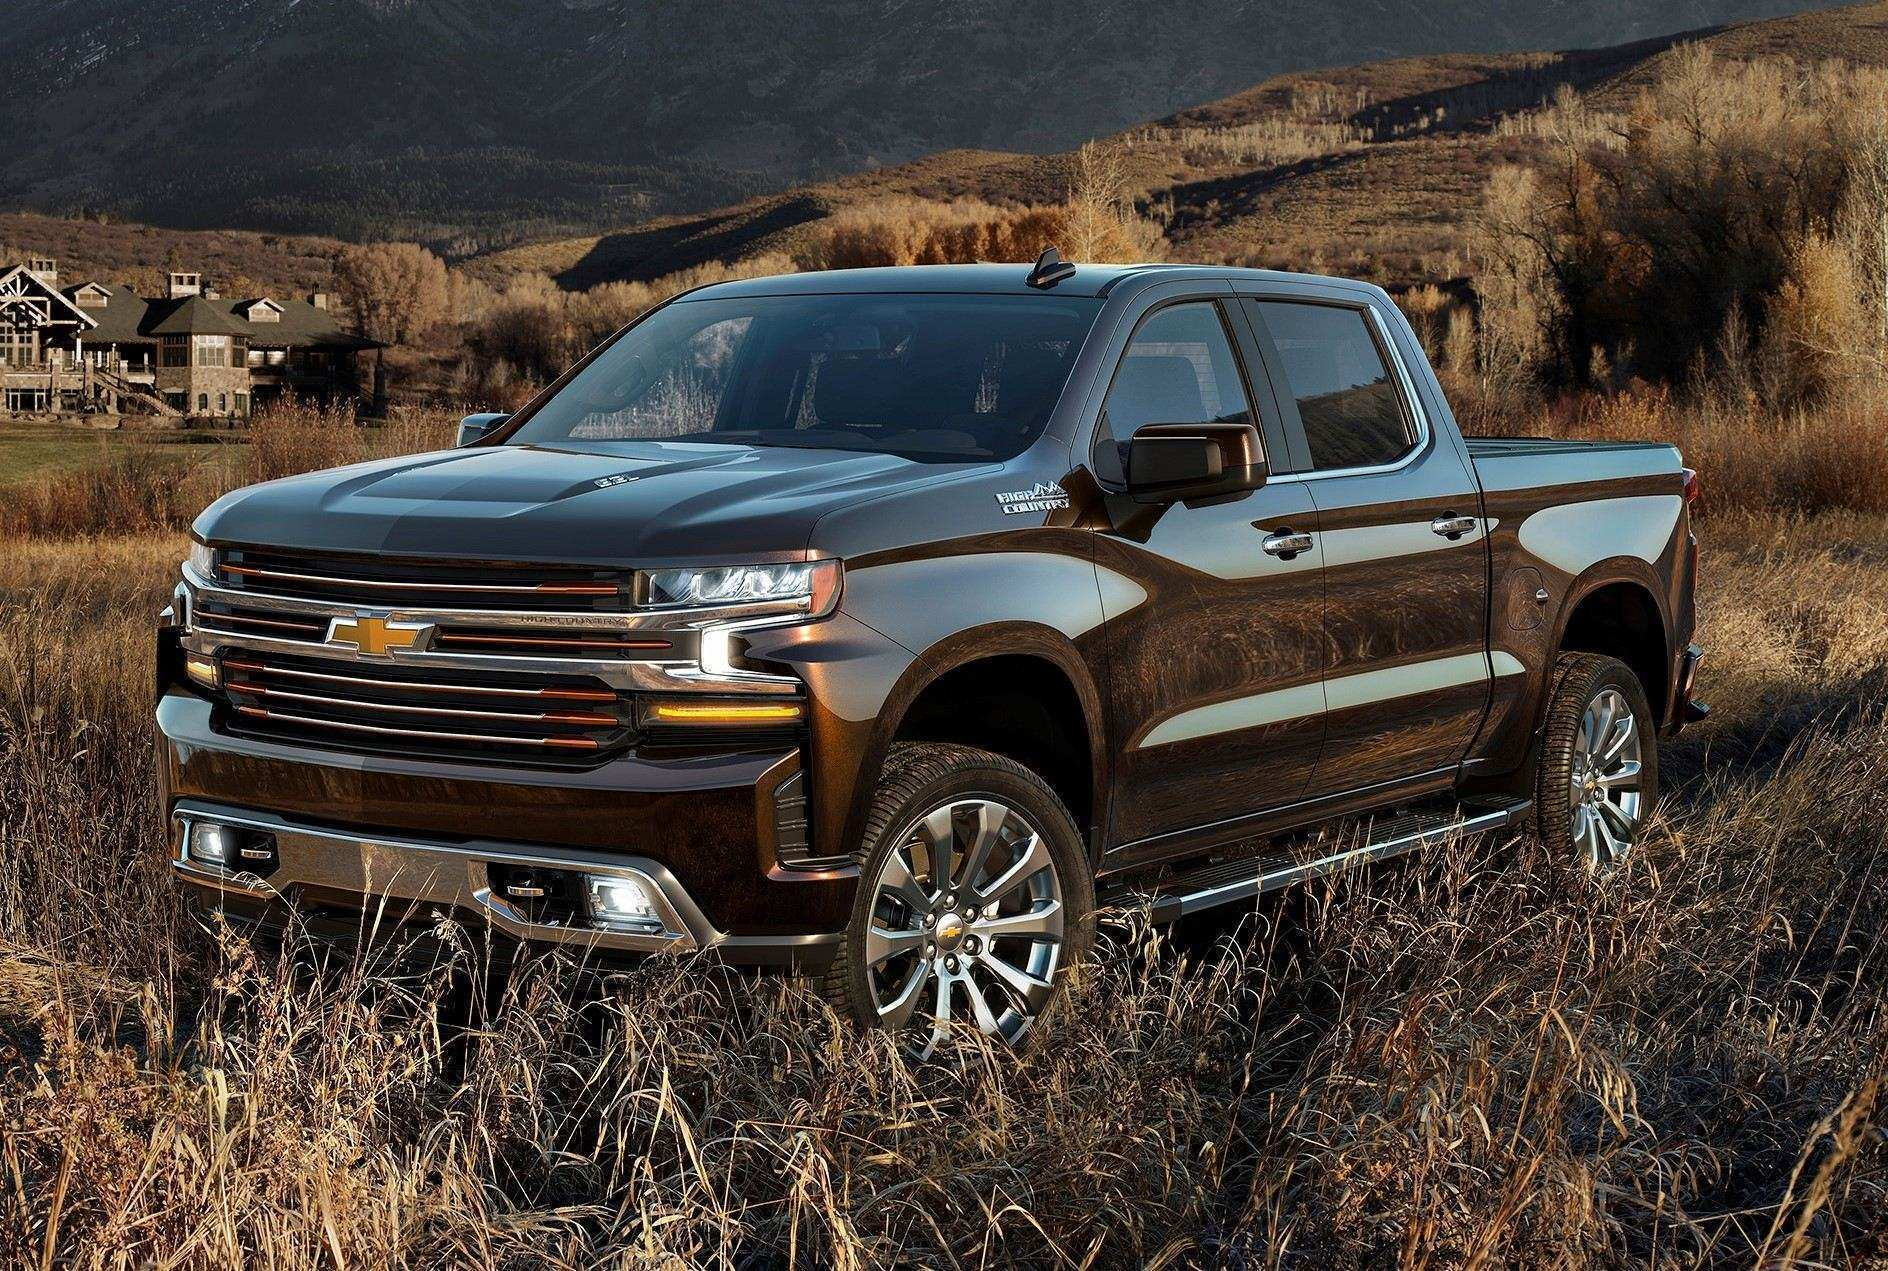 75 New 2019 Chevrolet Hd Trucks Reviews by 2019 Chevrolet Hd Trucks